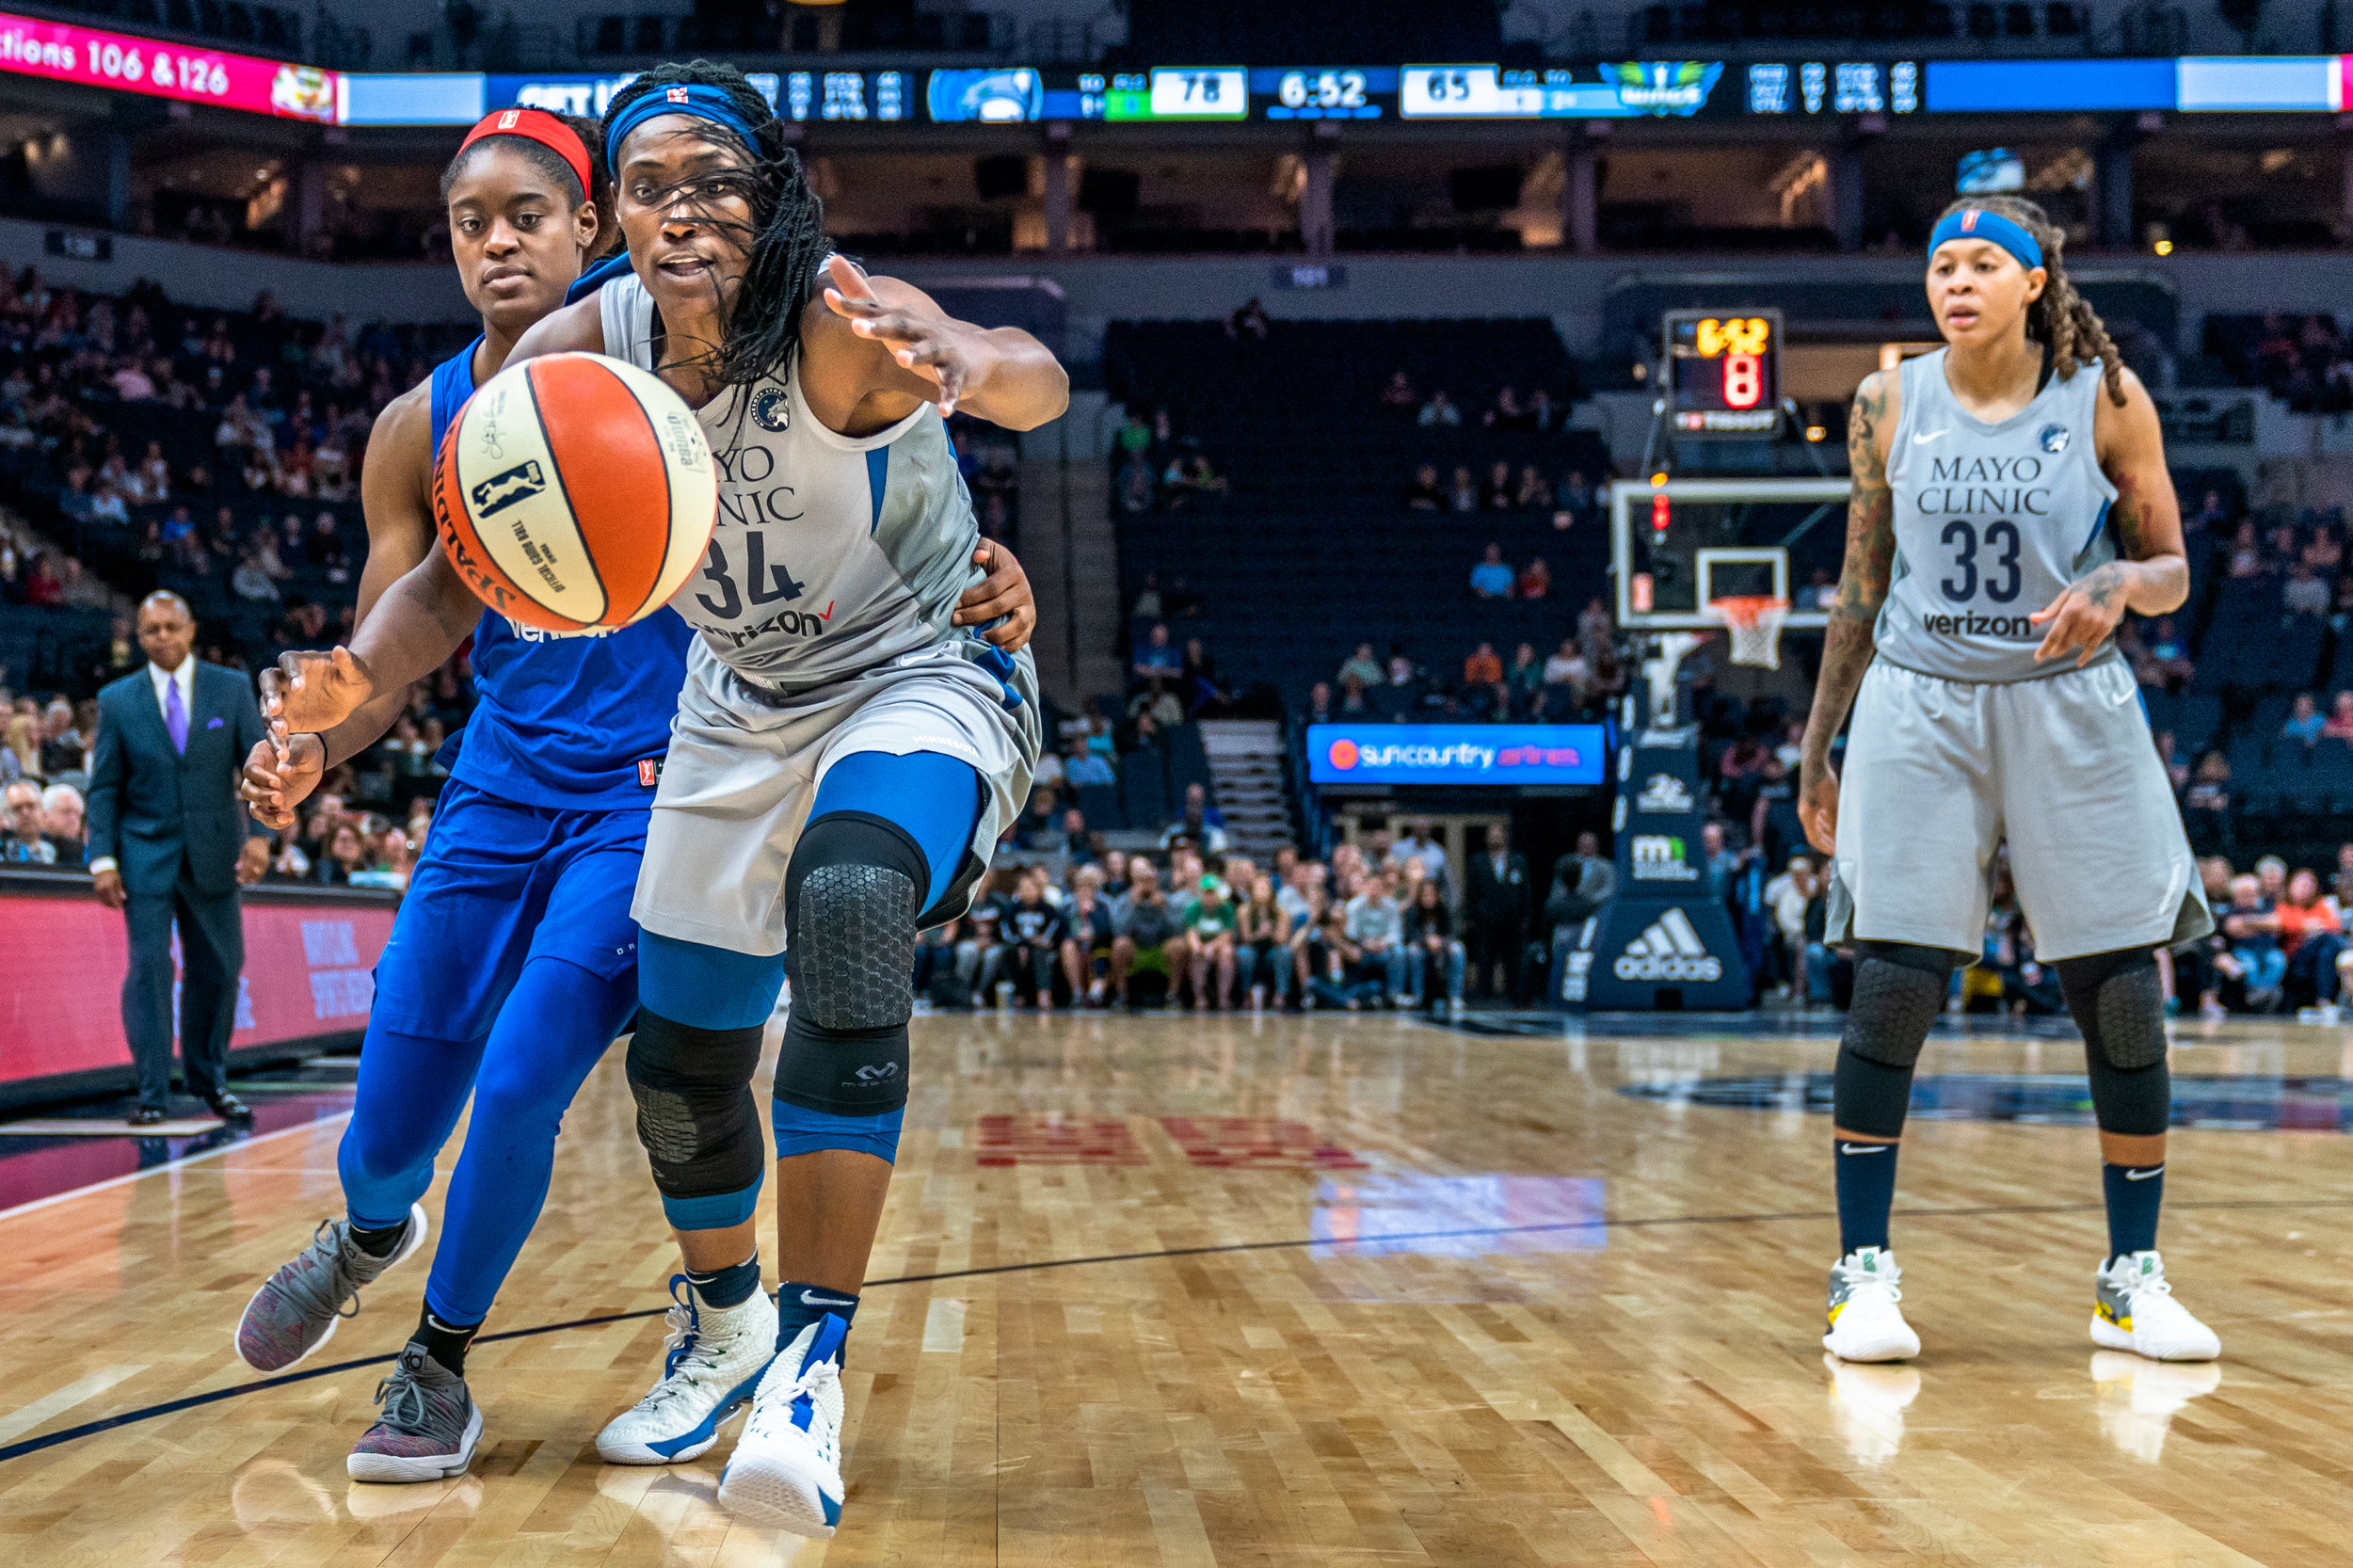 Sylvia Fowles saves a ball from going out of bounds as she's guarded by Kaela Davis in the Minnesota Lynx vs Dallas Wings game at Target Center.